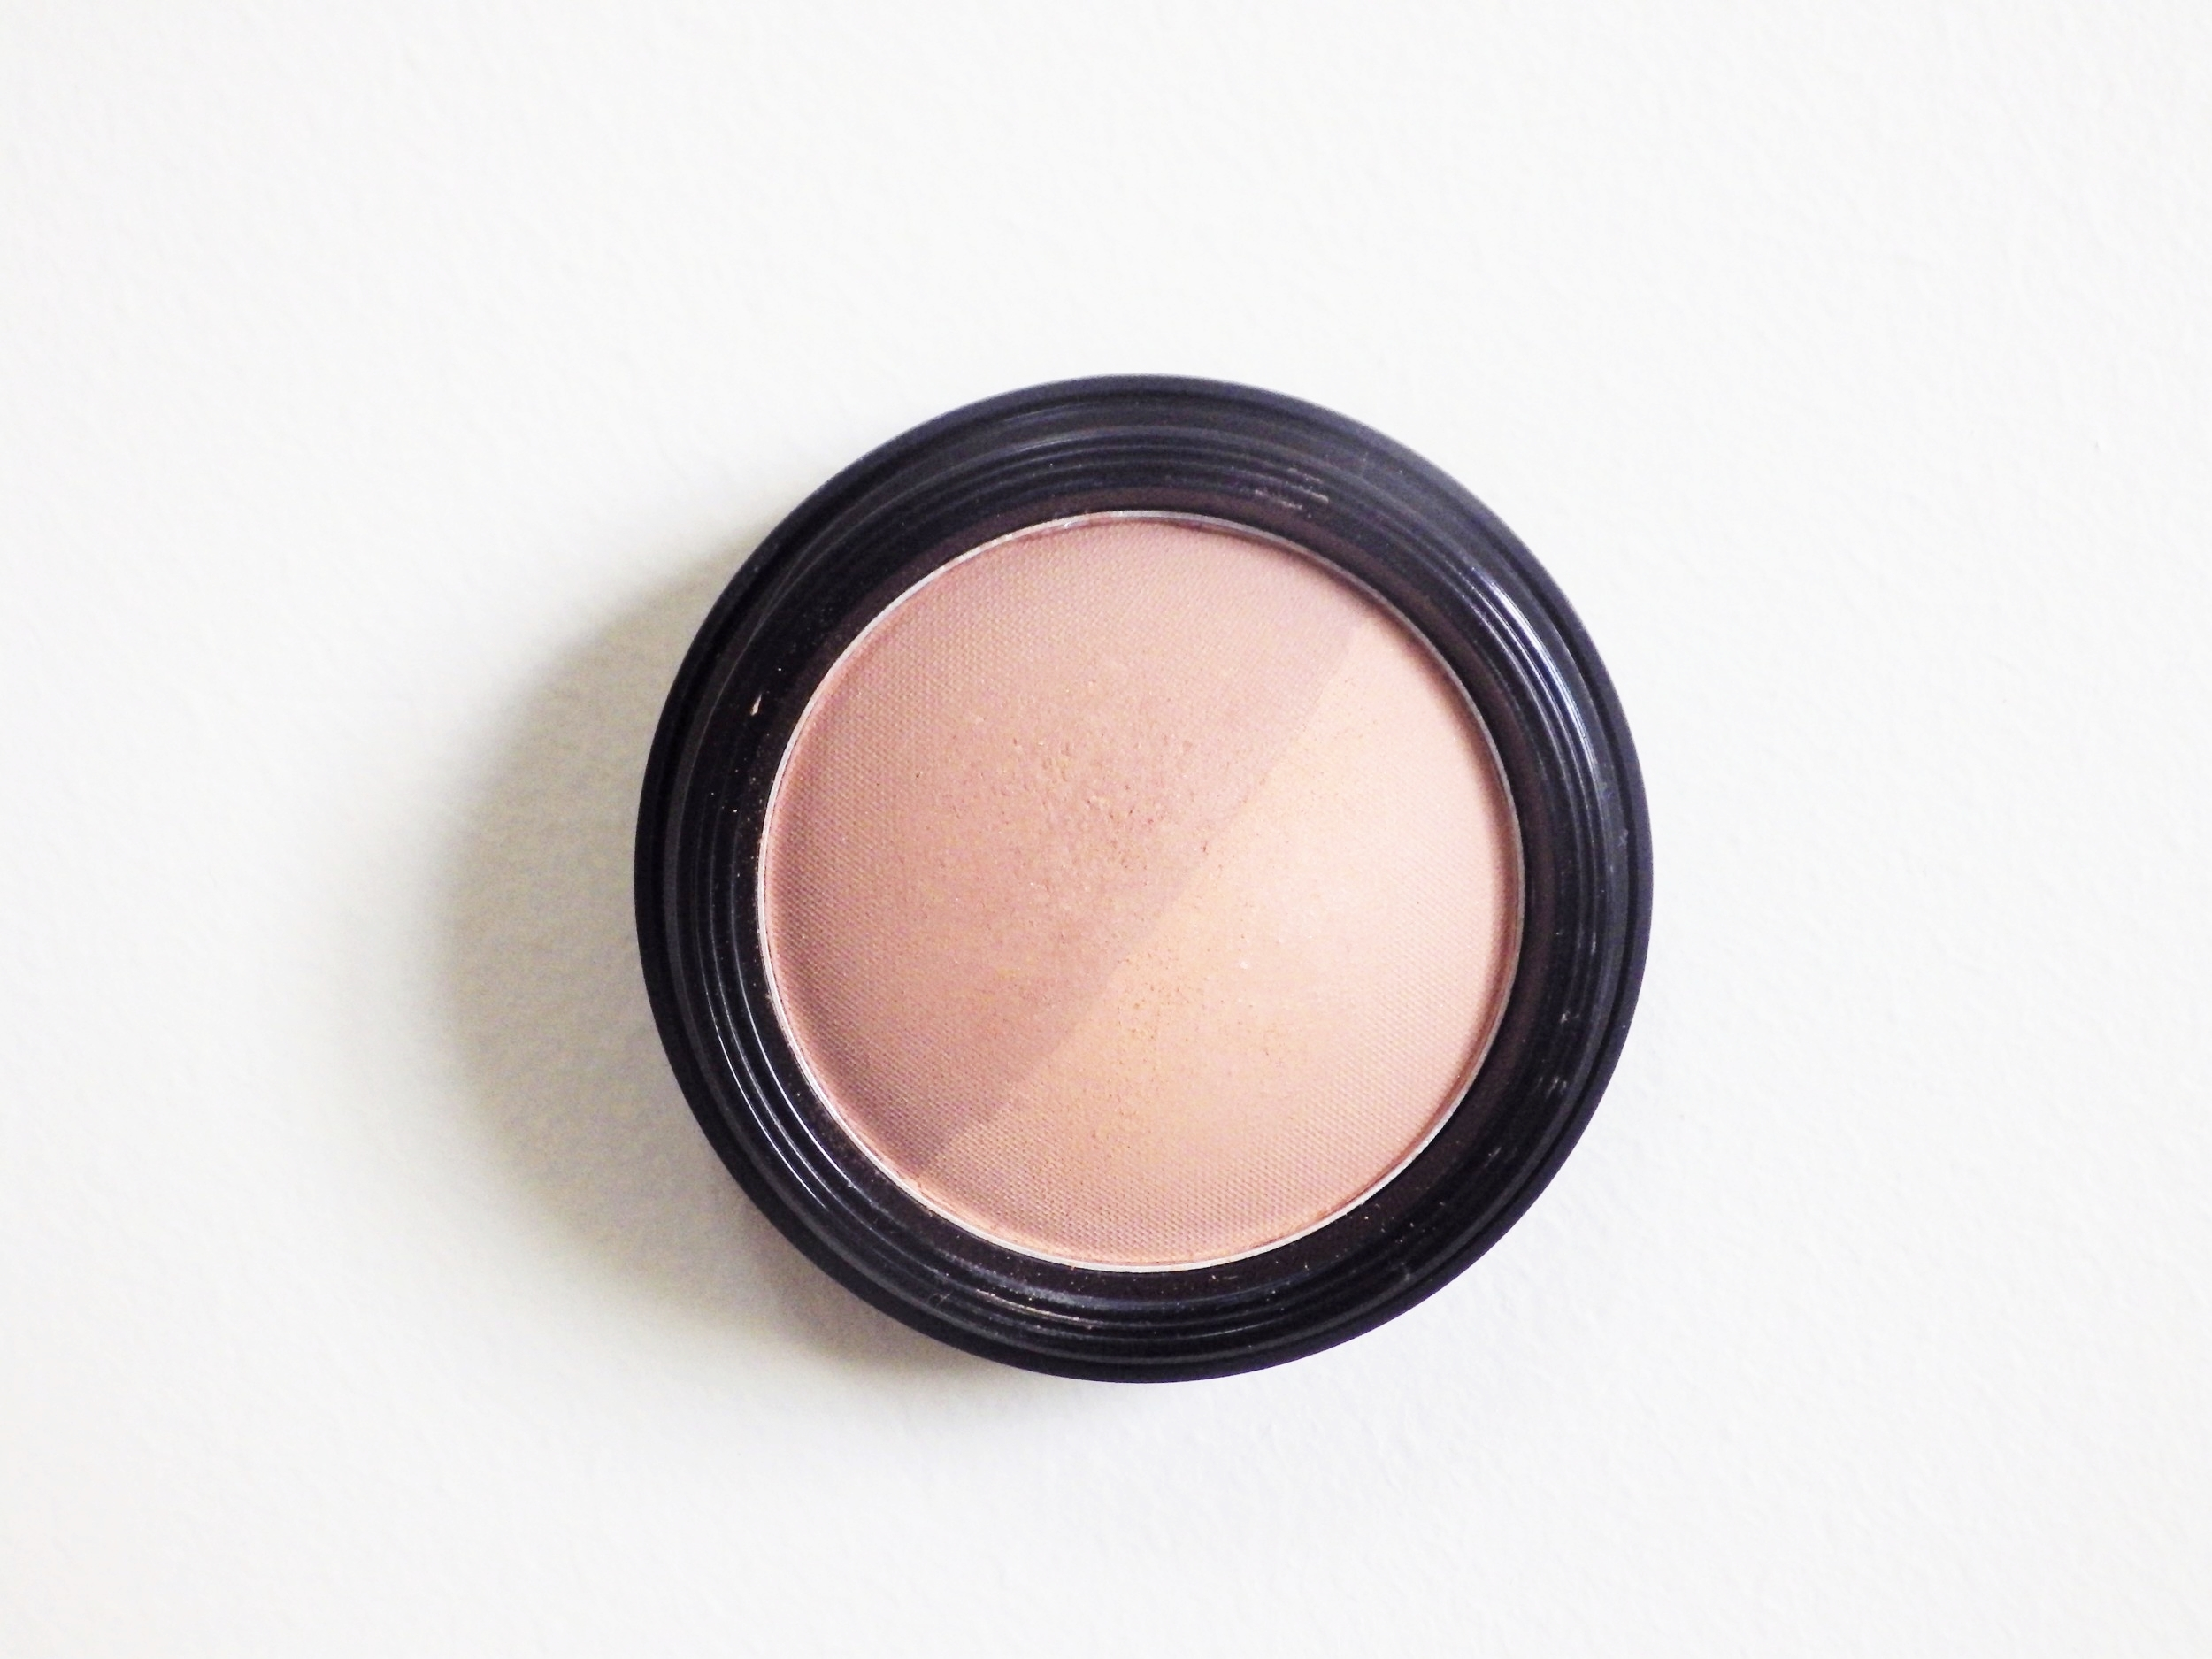 Fashion 21 Blush Duo